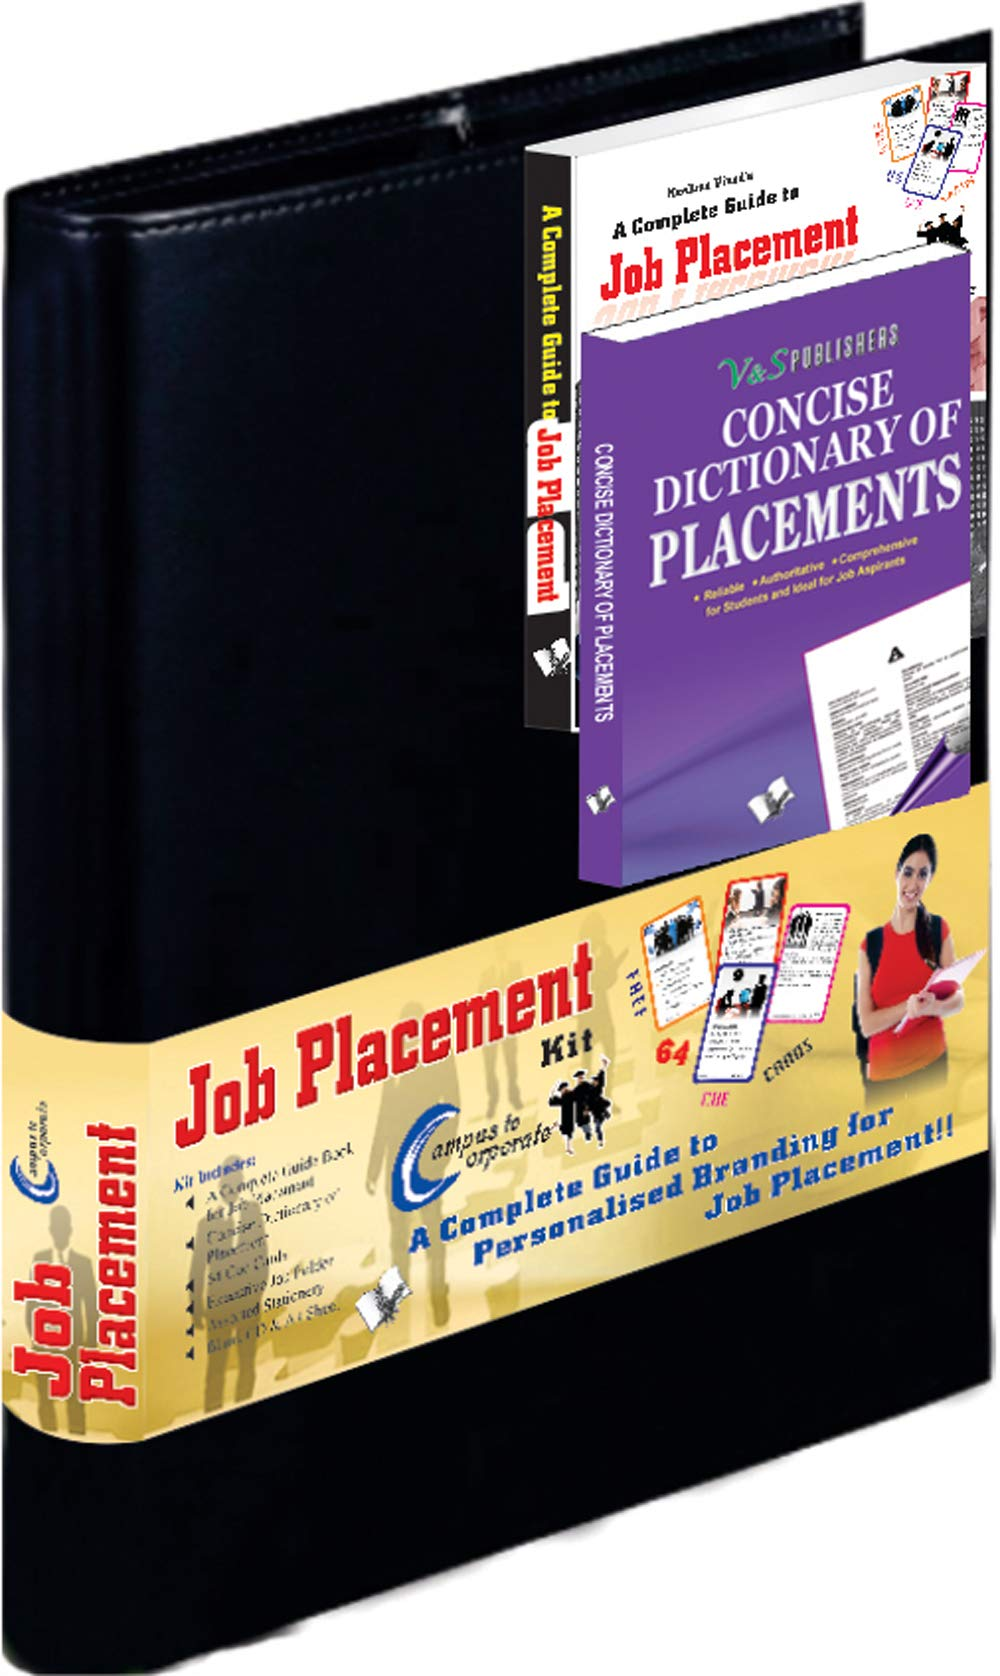 Job Placement kit (With Eductional Folder)